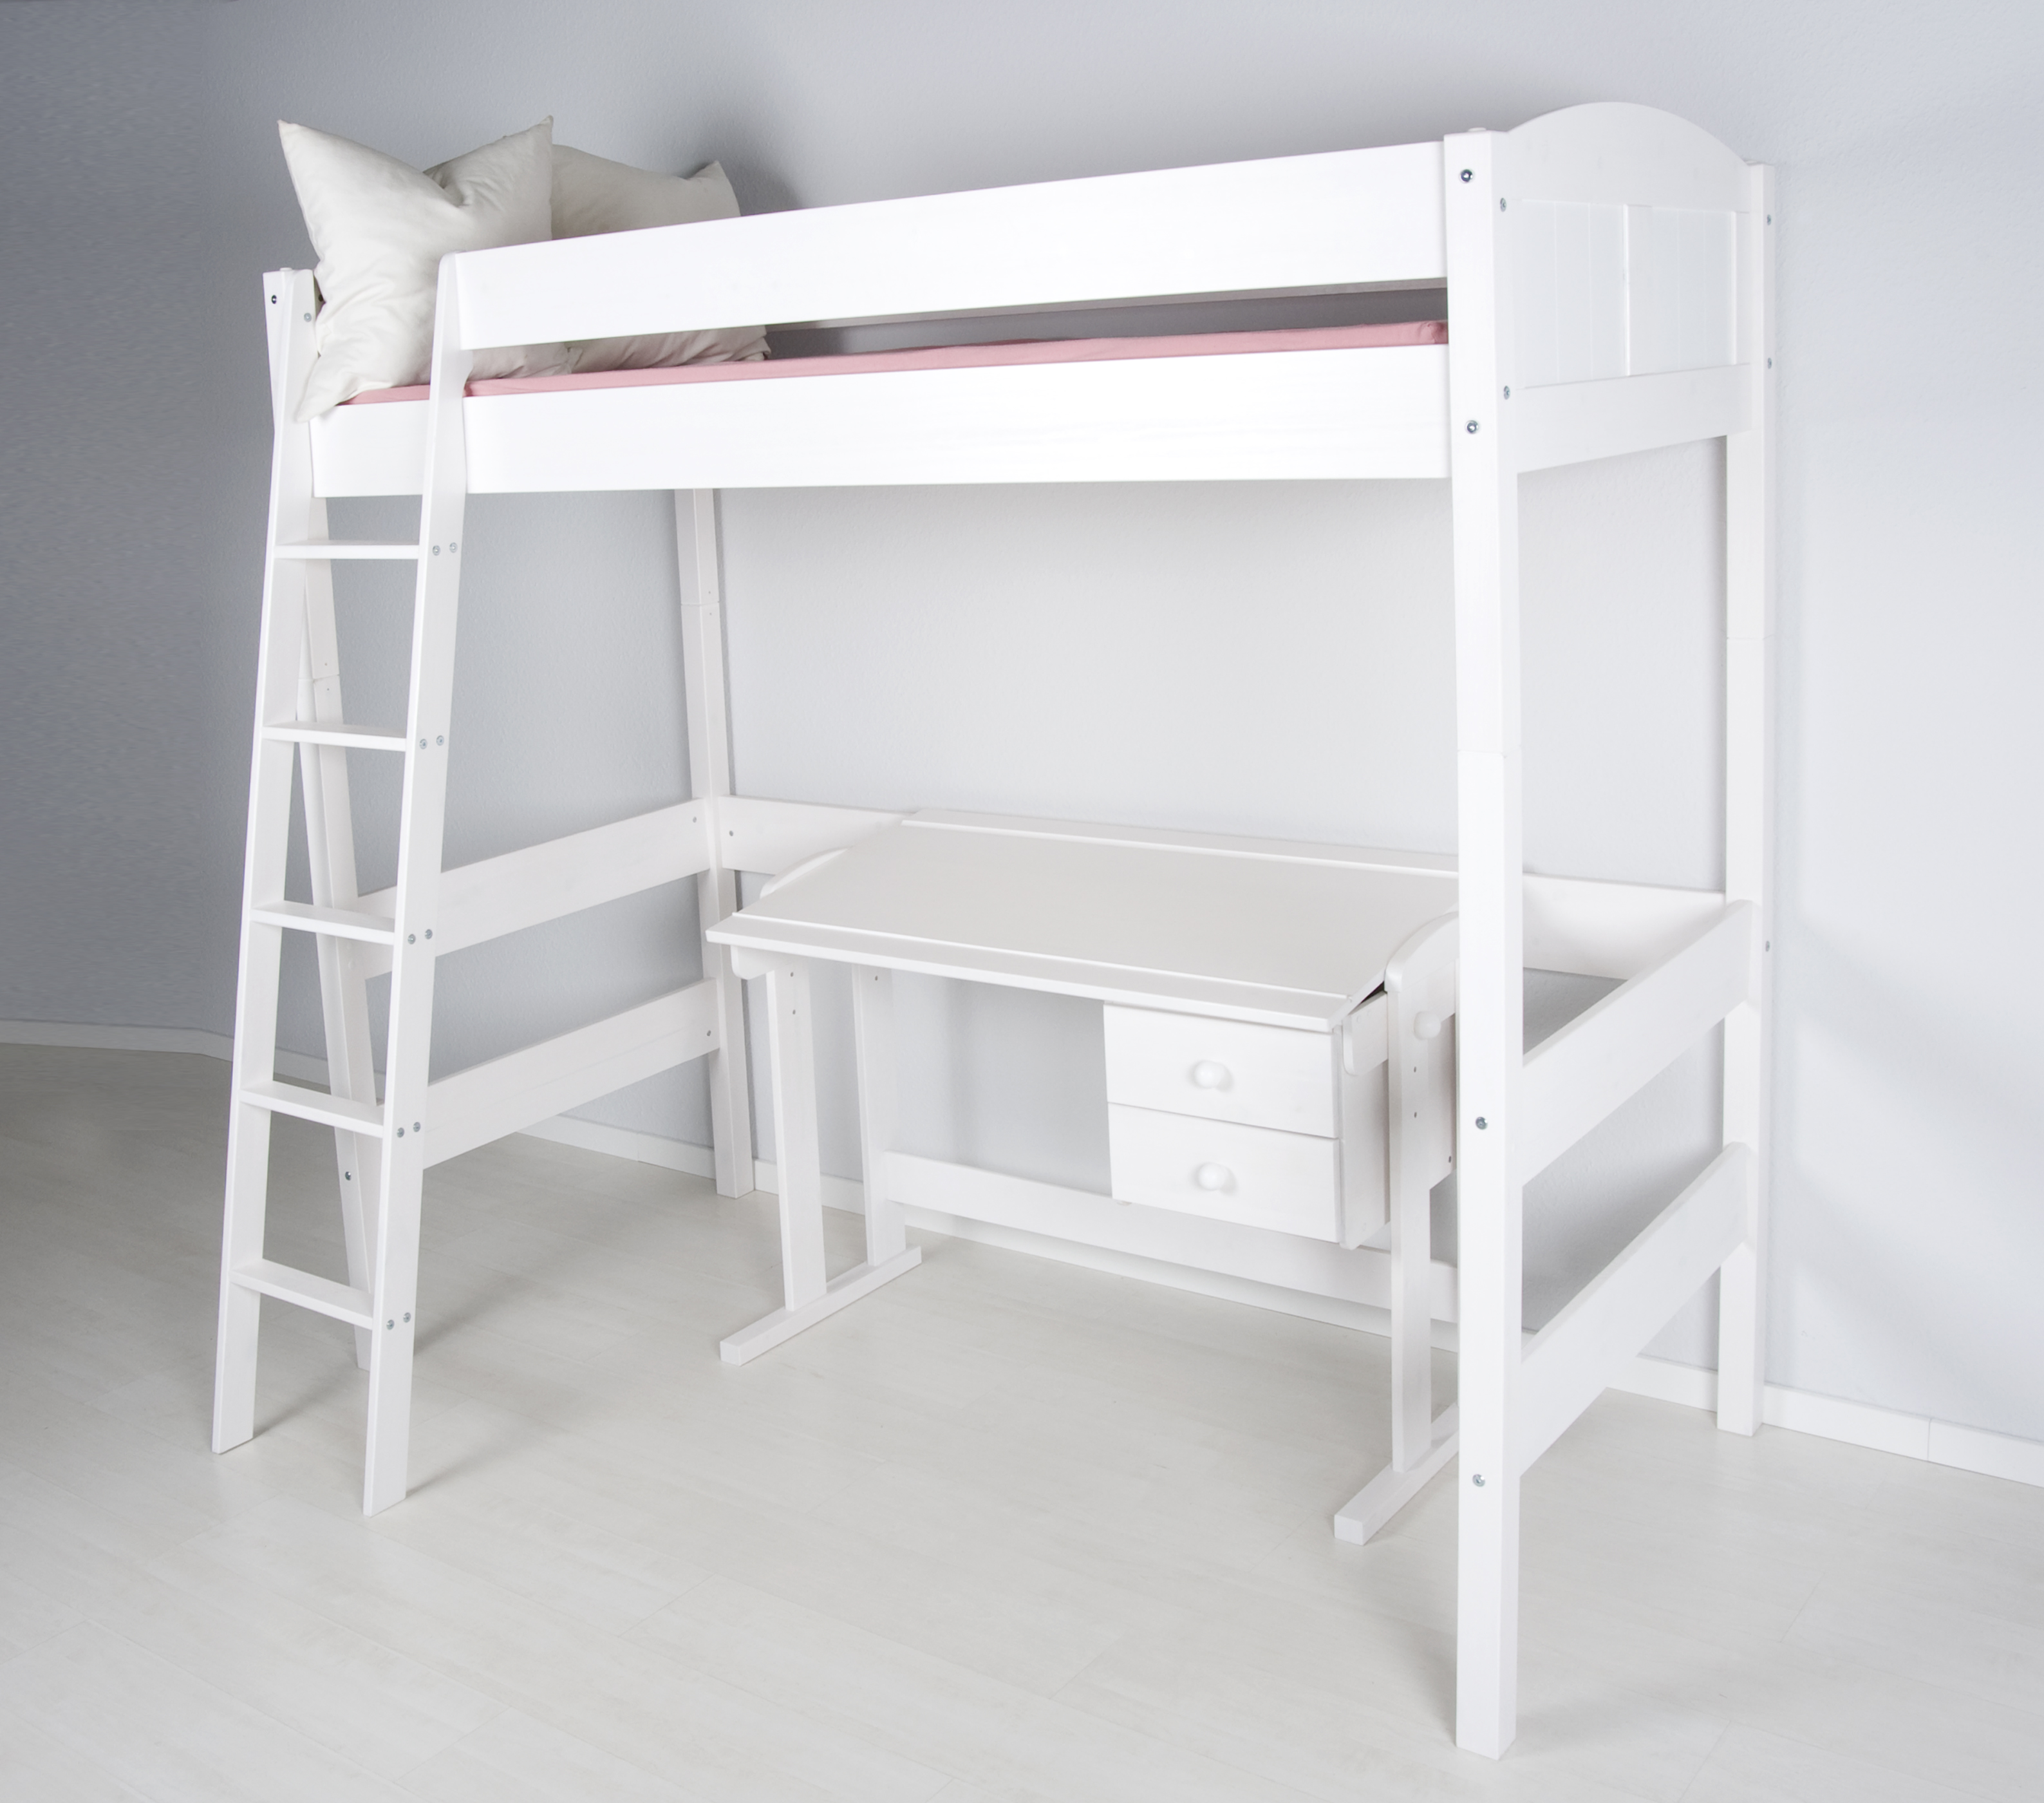 hochbett spielbett kinderbett etagenbett ida 180cm hoch ebay. Black Bedroom Furniture Sets. Home Design Ideas